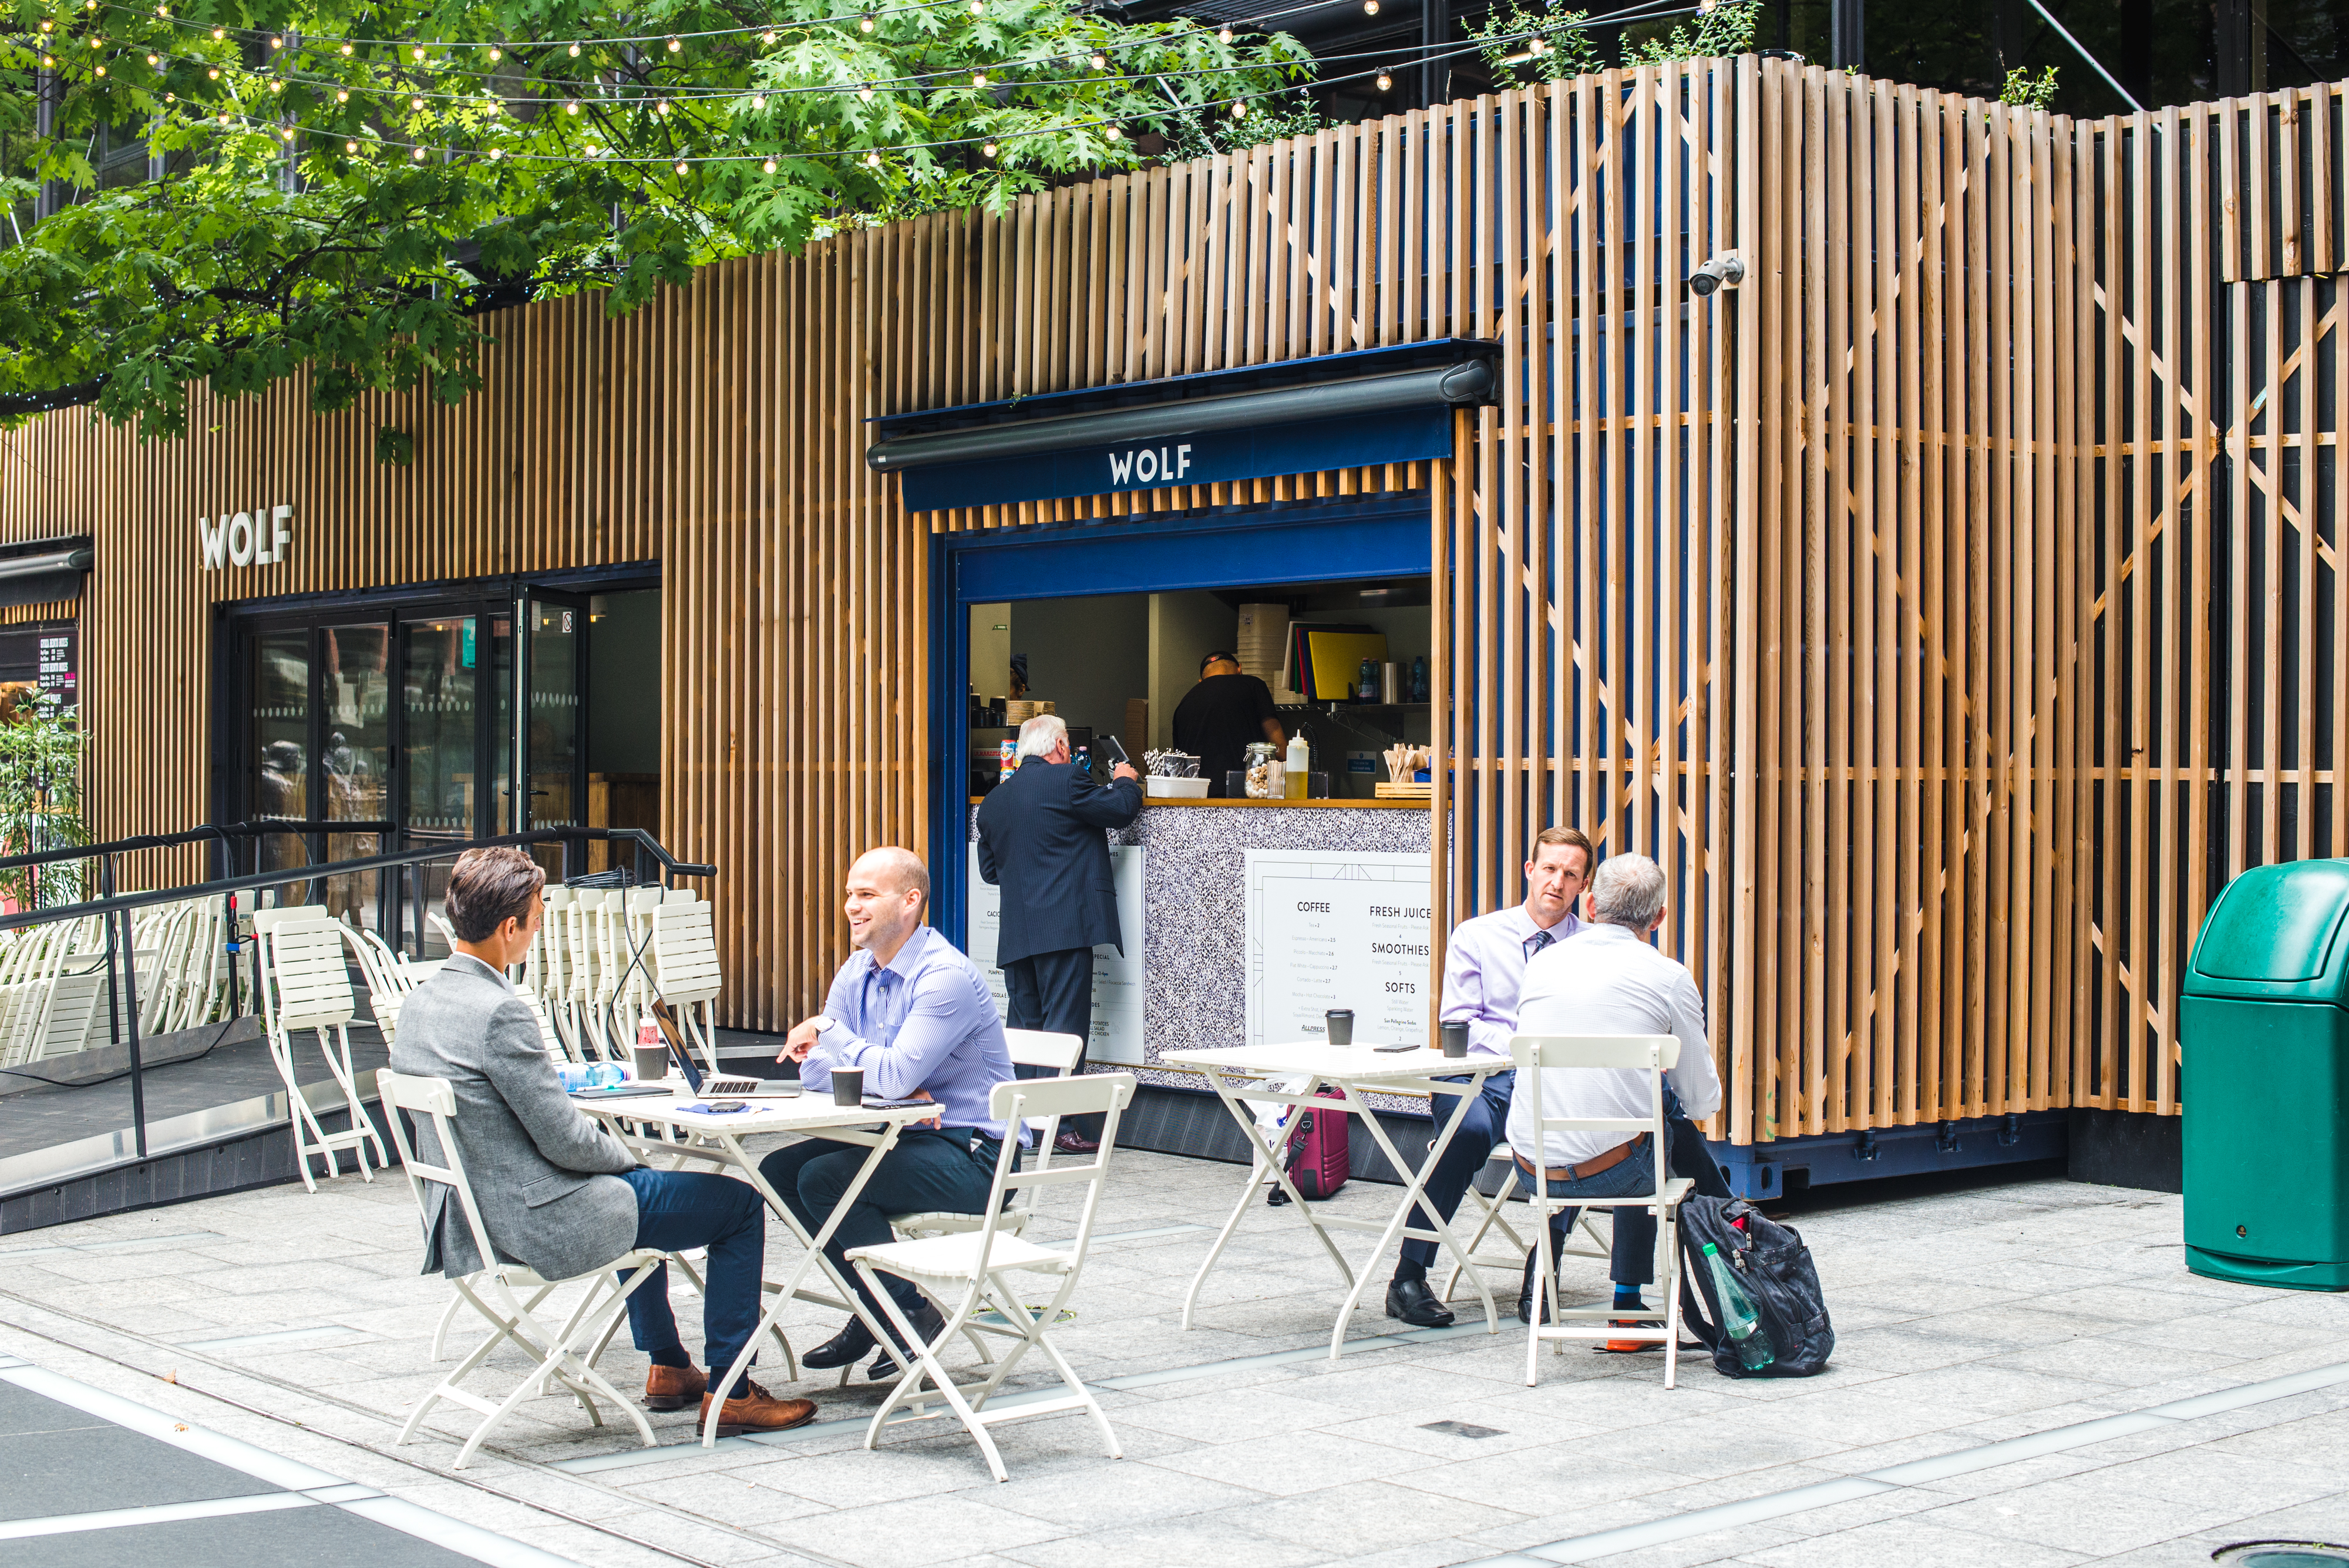 Where To Grab Lunch In The City - City - London - The